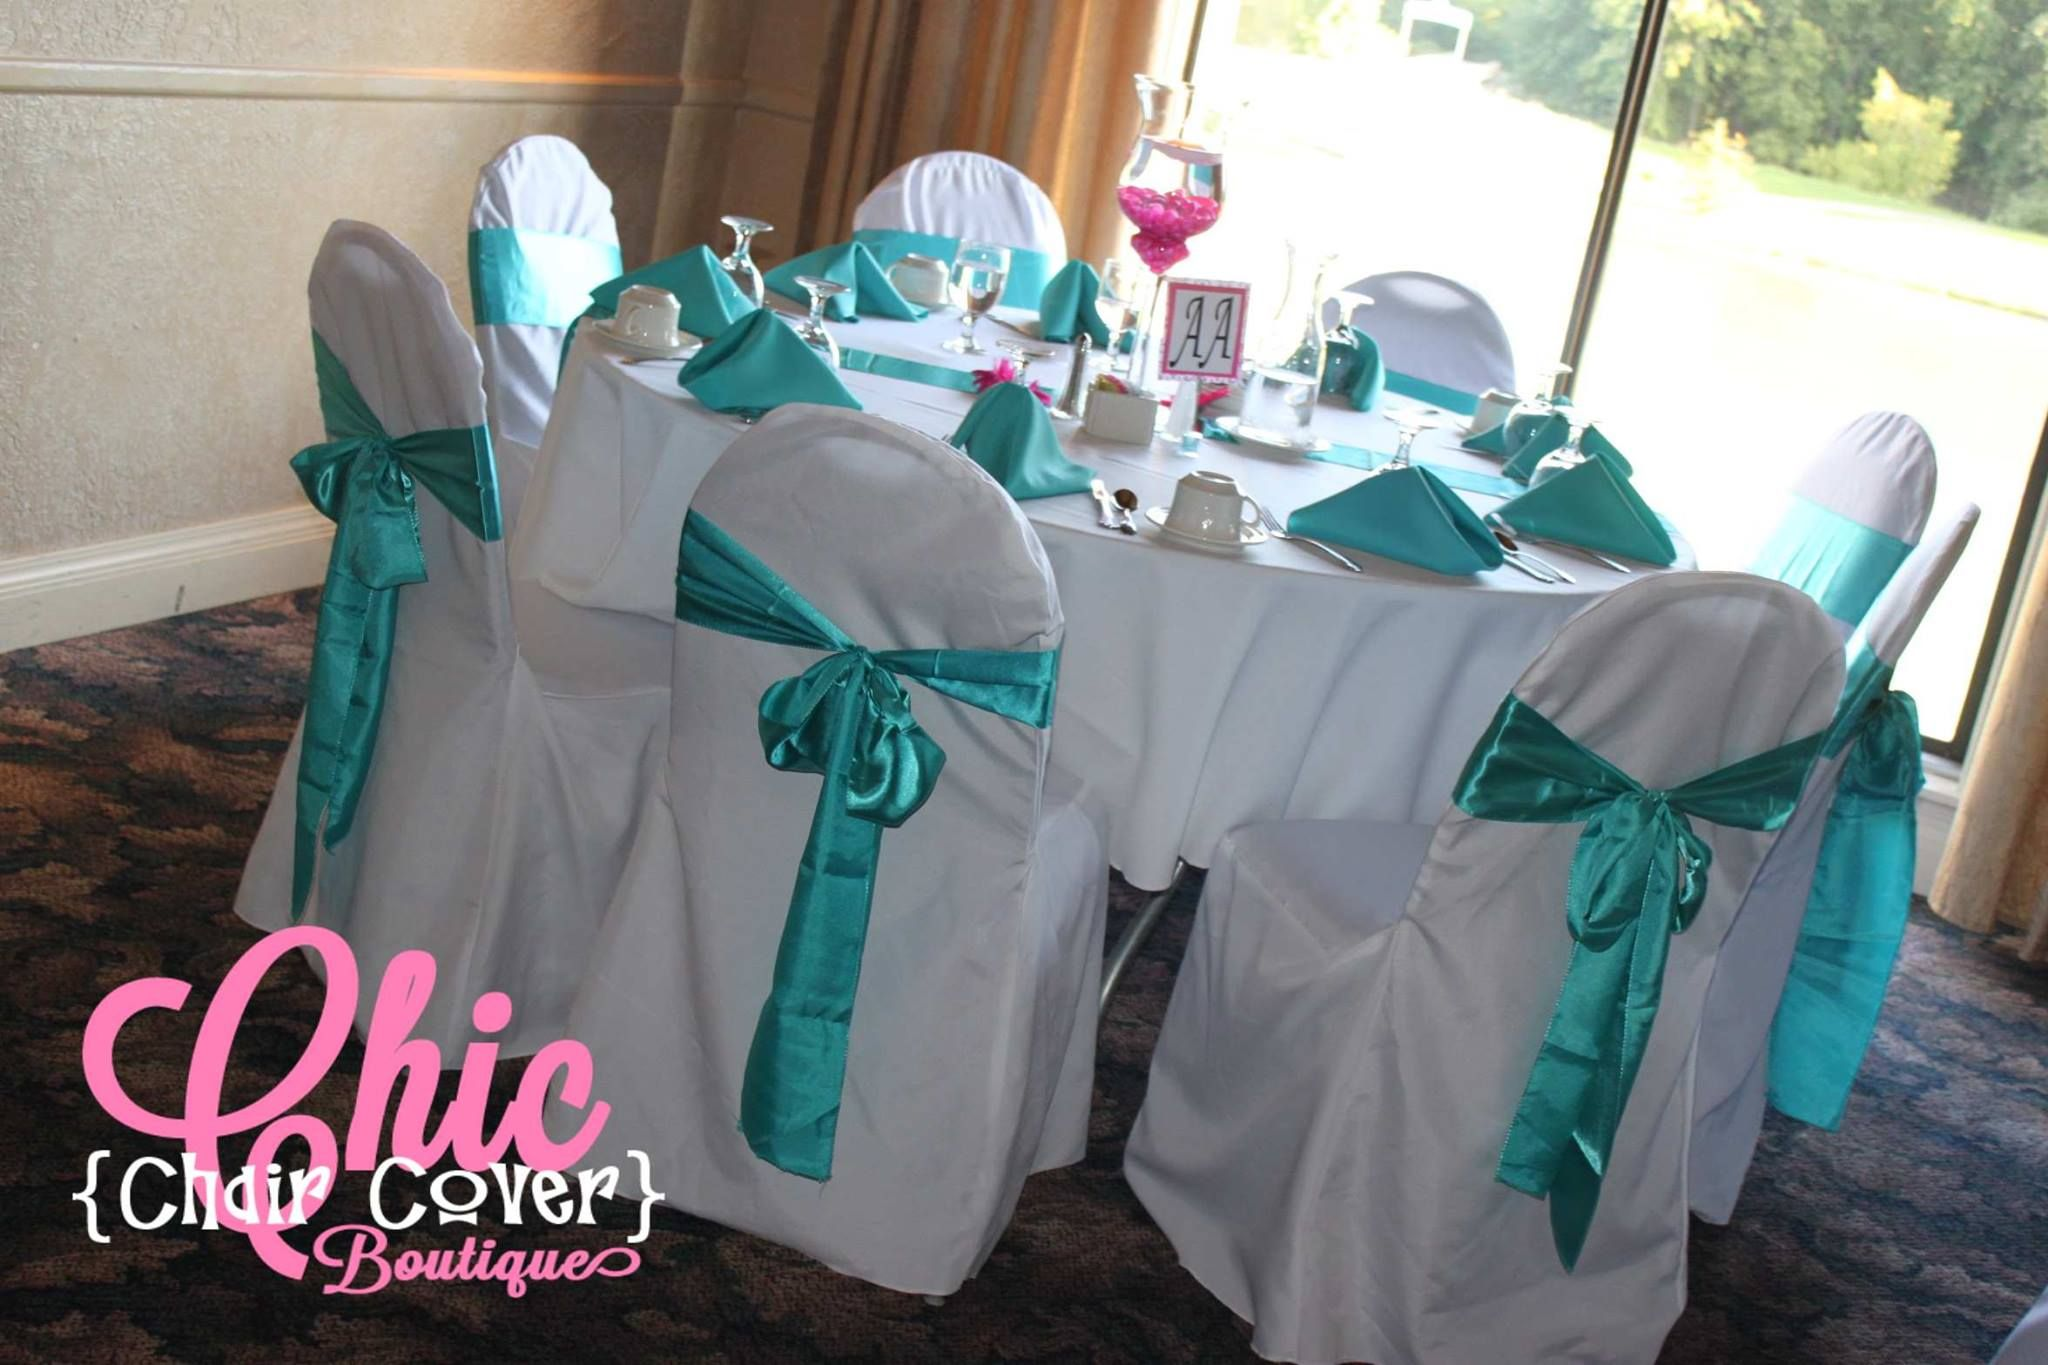 Charmant White Polyester Banquet Chair Covers, White Tablecloths, Light Turquoise  Chair Sashes And Table Runners, With Turquoise Polyester Napkins